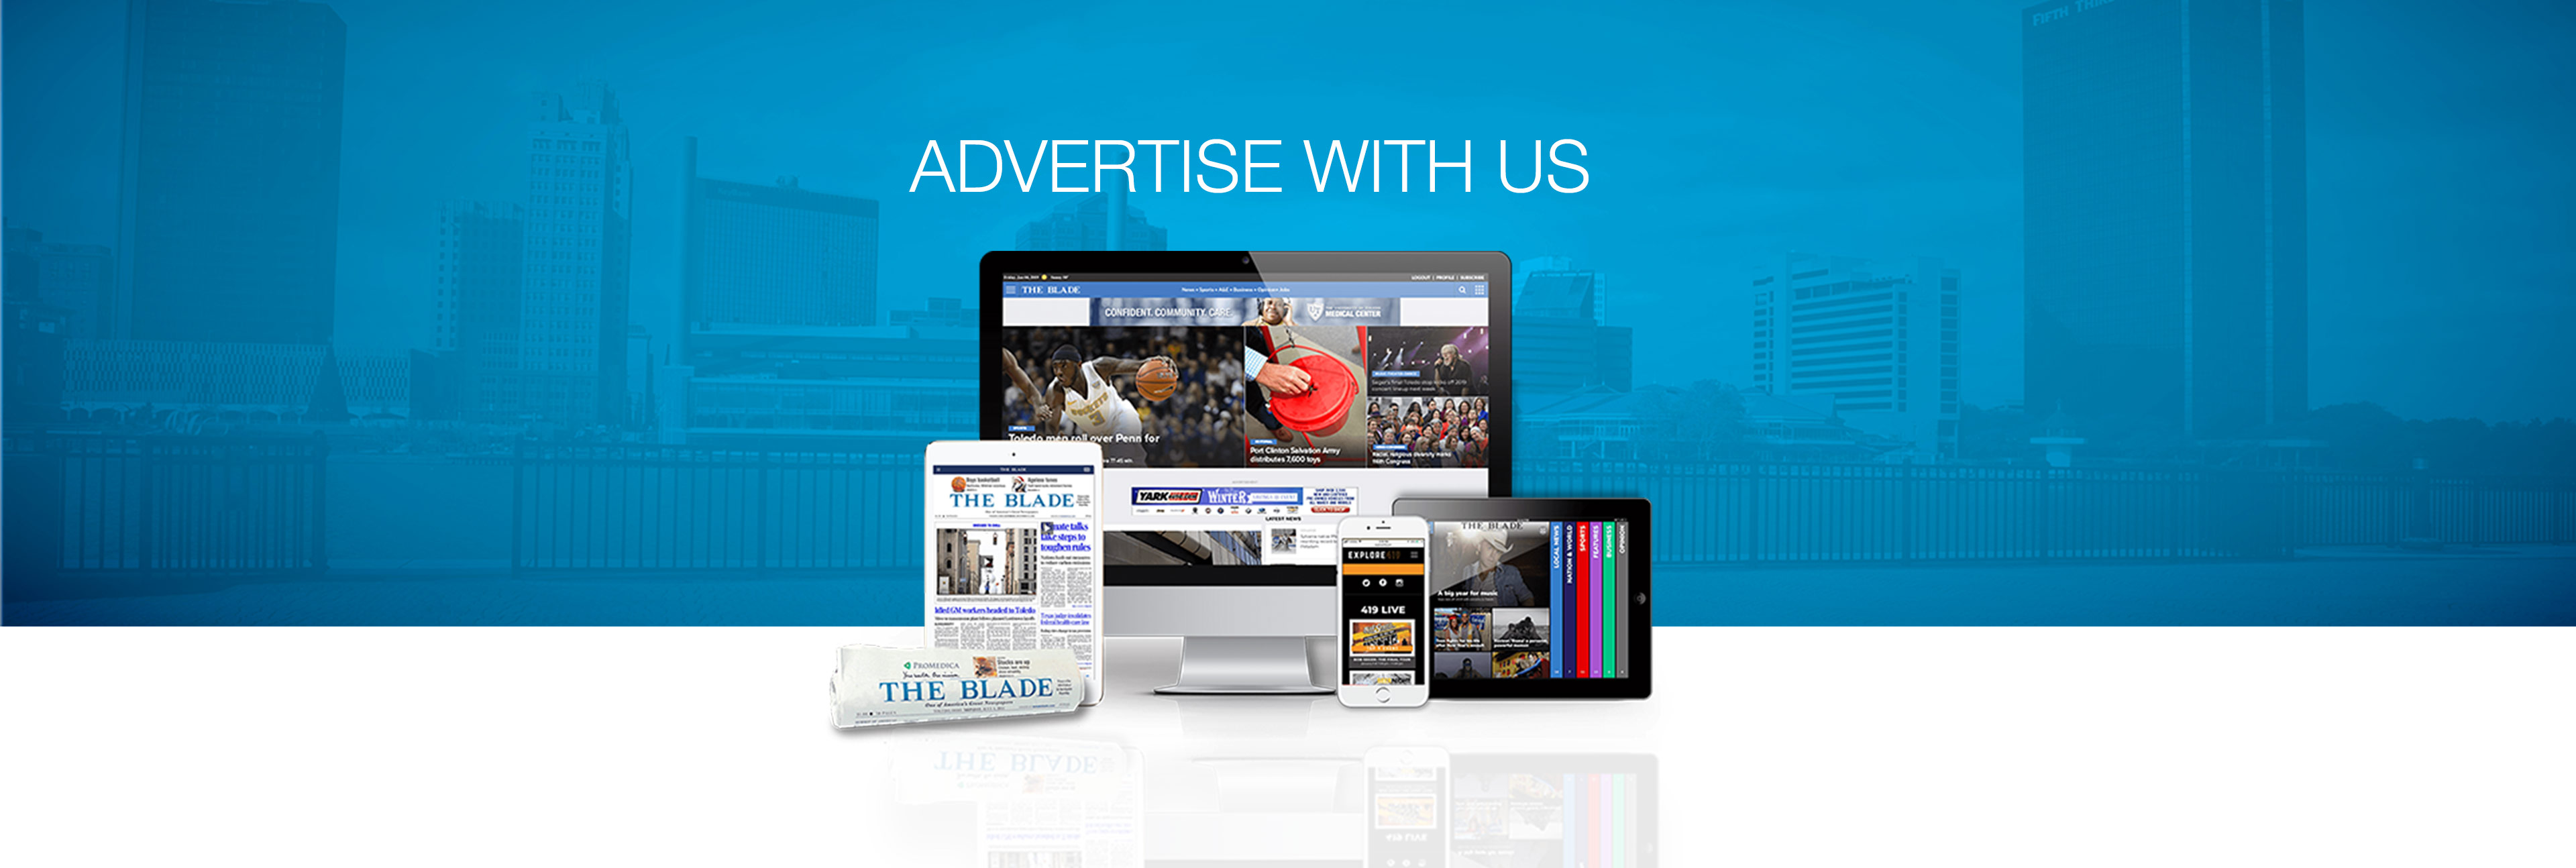 8483c03355 The Blade Media Kit – We re ready to help you with your advertising ...